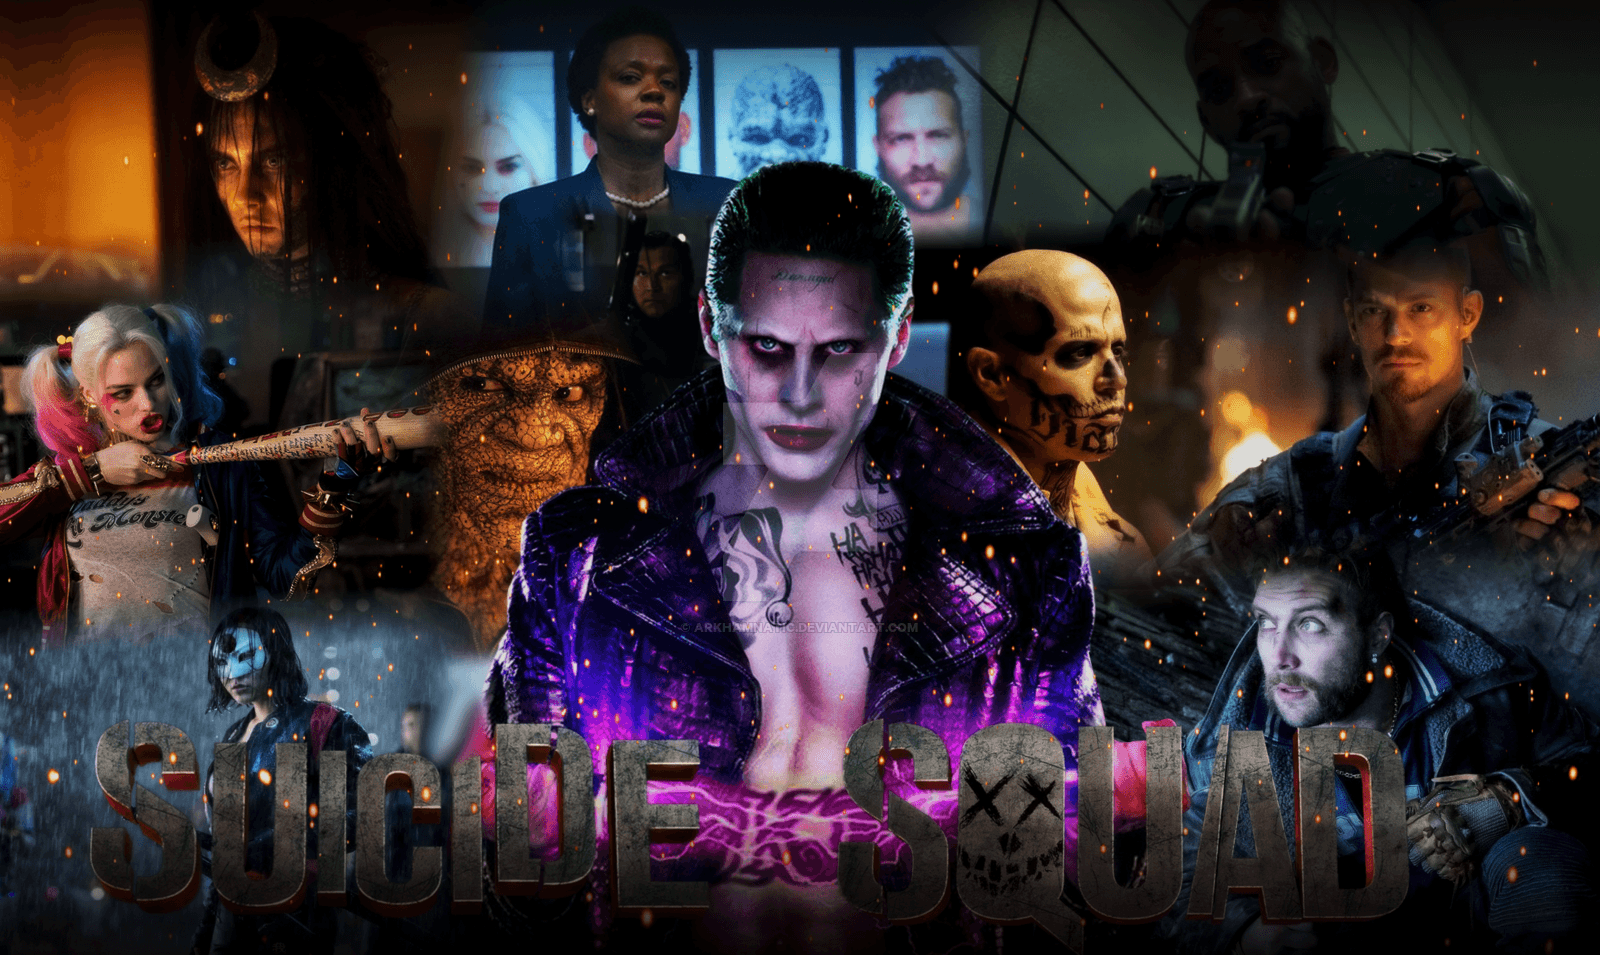 Free download Suicide Squad Movie wallpapers by ArkhamNatic [1600x955] for your Desktop, Mobile & Tablet